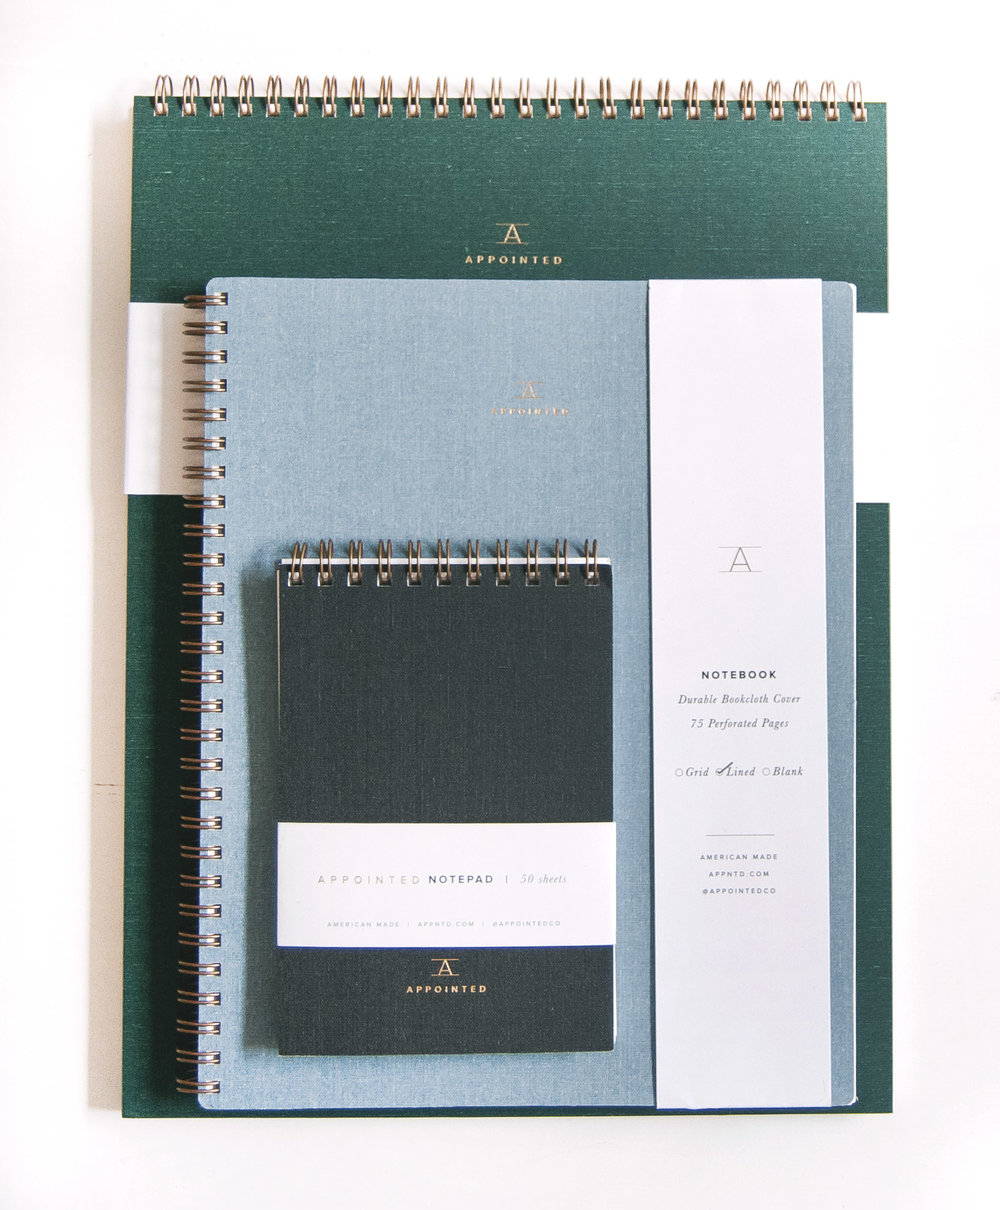 Appointed Notebooks